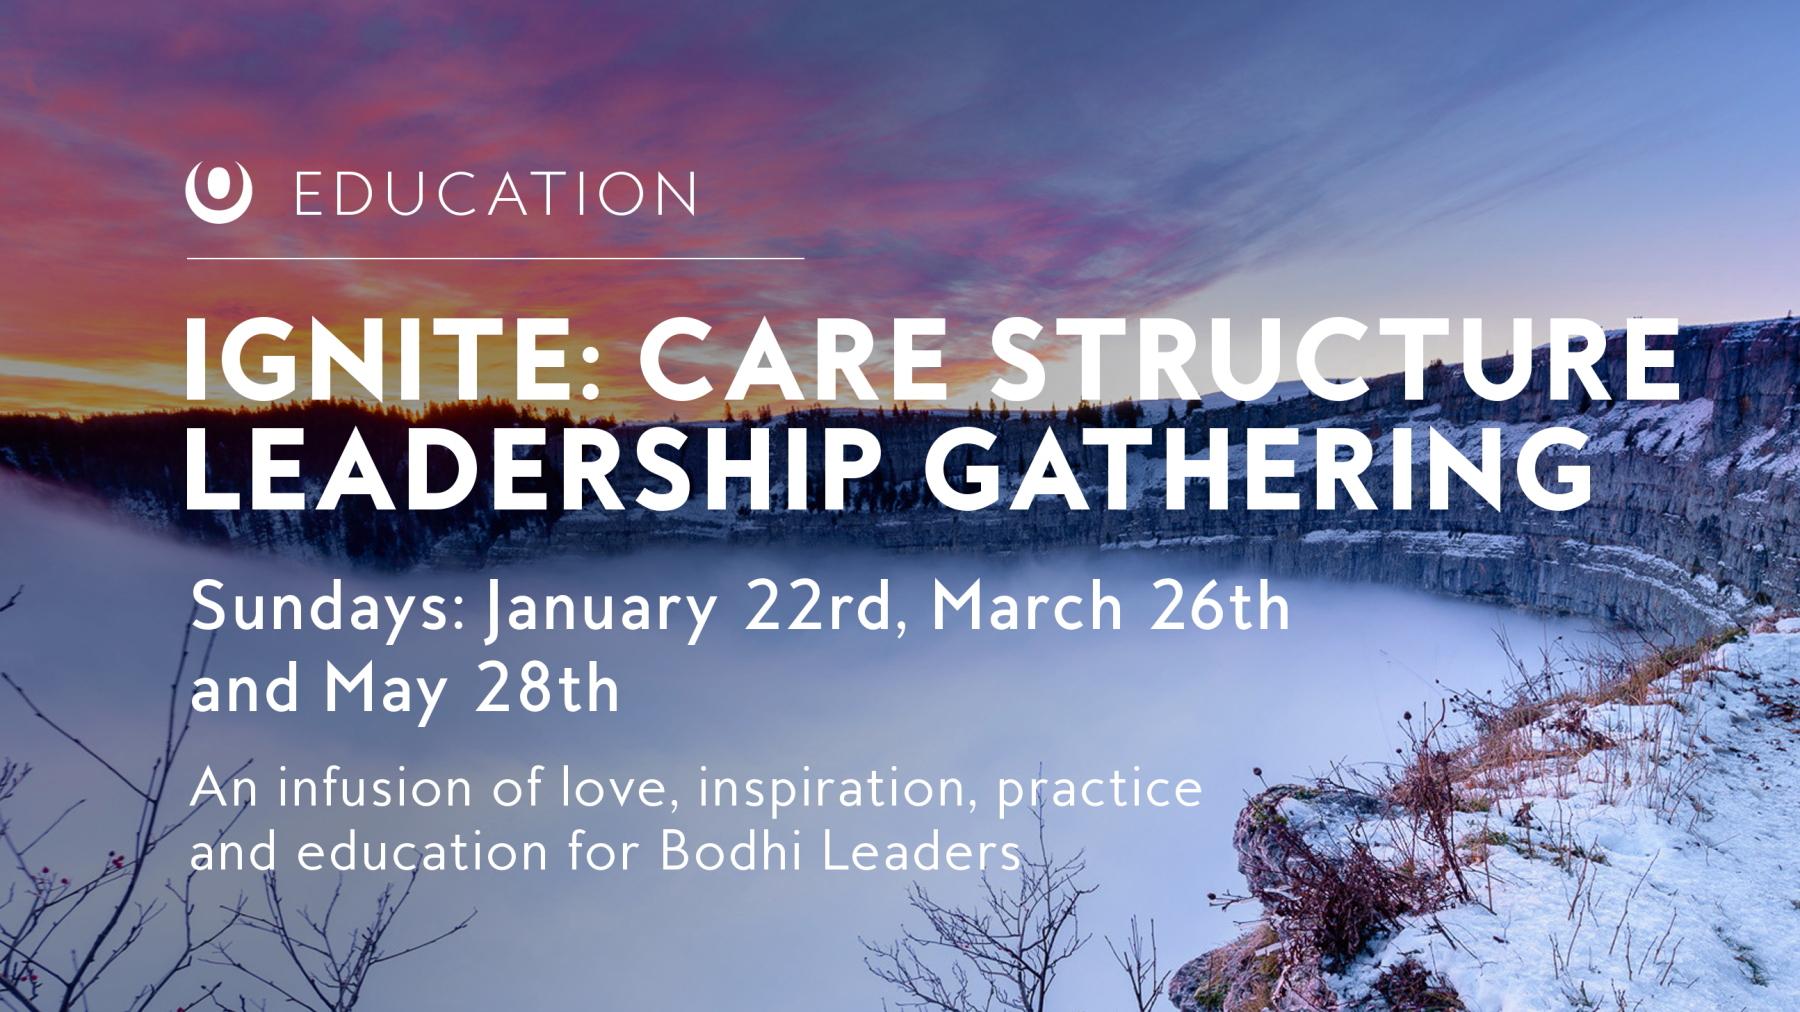 care-structure-leadership-gathering-slide-new-home-1800